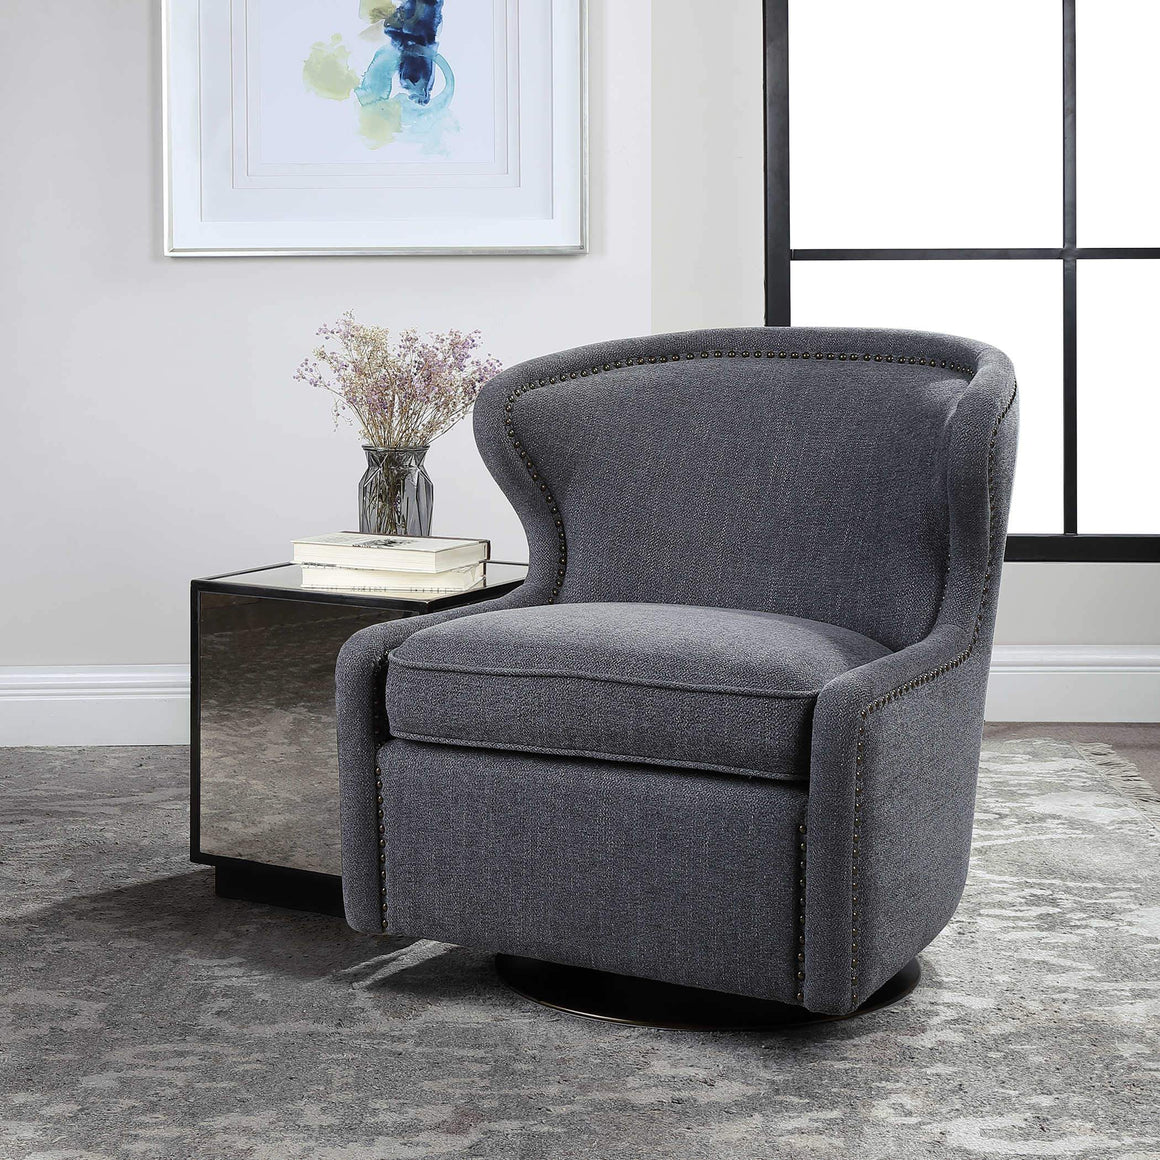 Biscay Swivel Chair - taylor ray decor